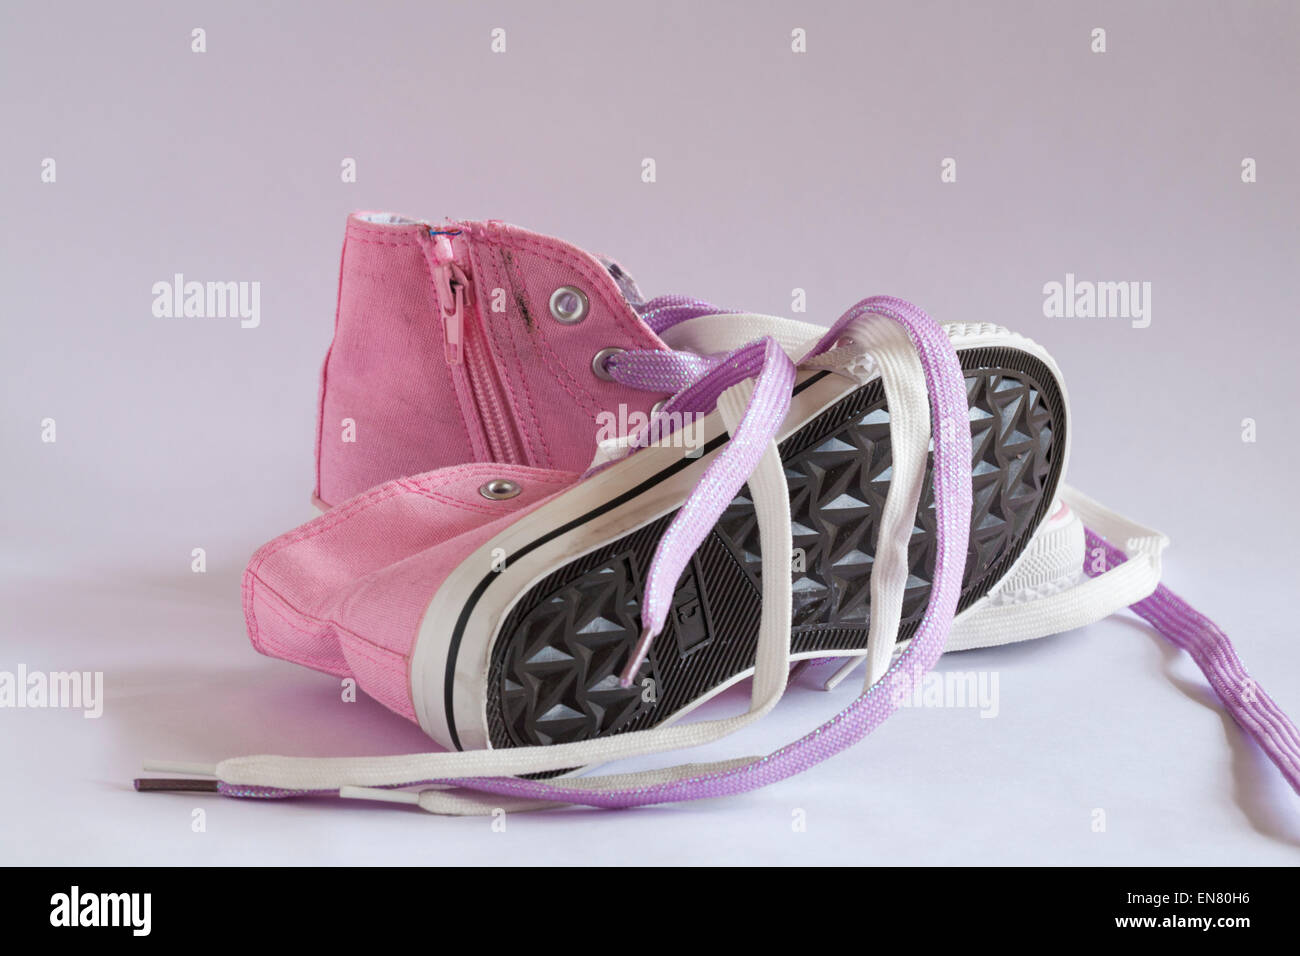 Pair of pink canvas tie up shoes isolated on white background - Stock Image